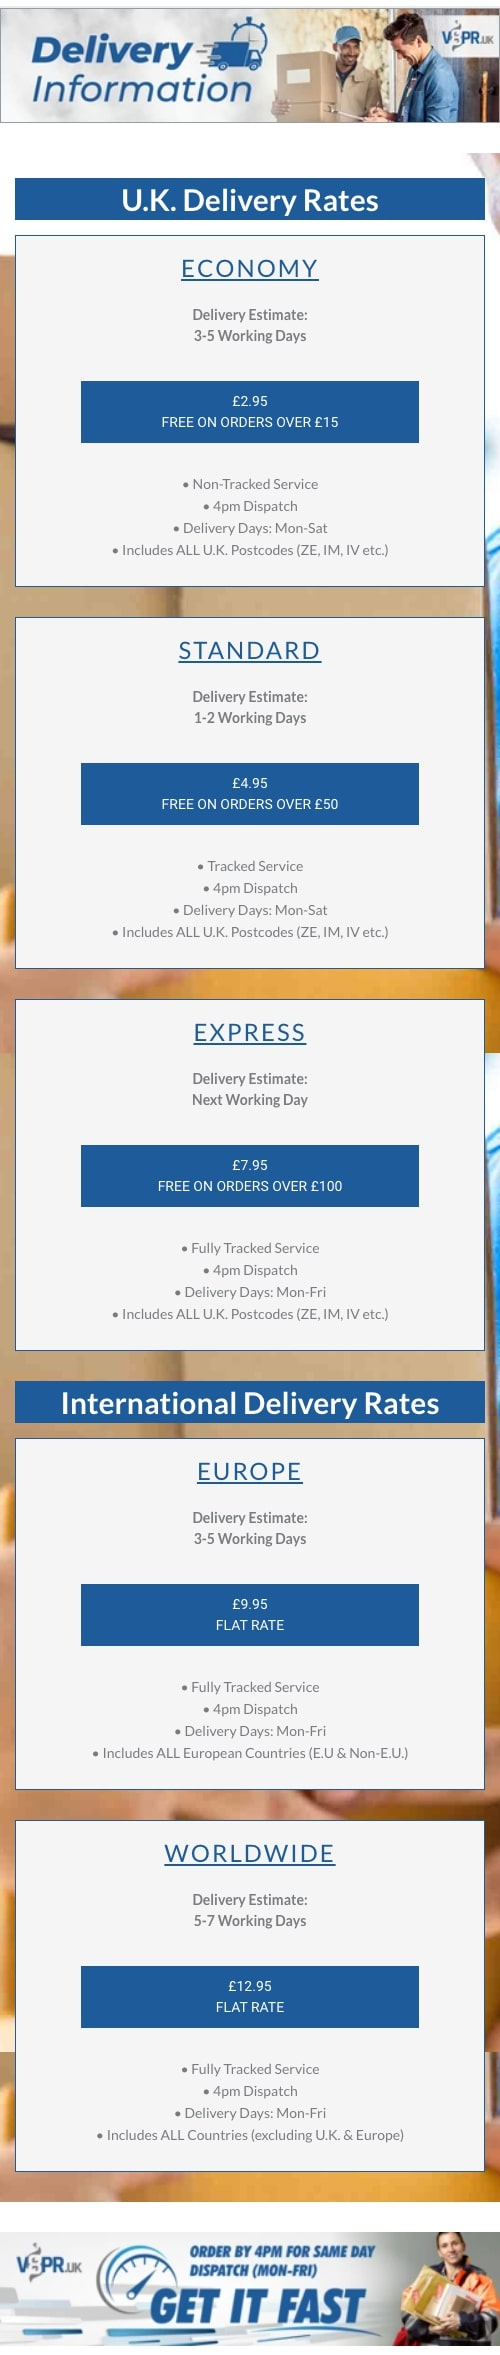 V8PR.uk - Delivery Rates & Information